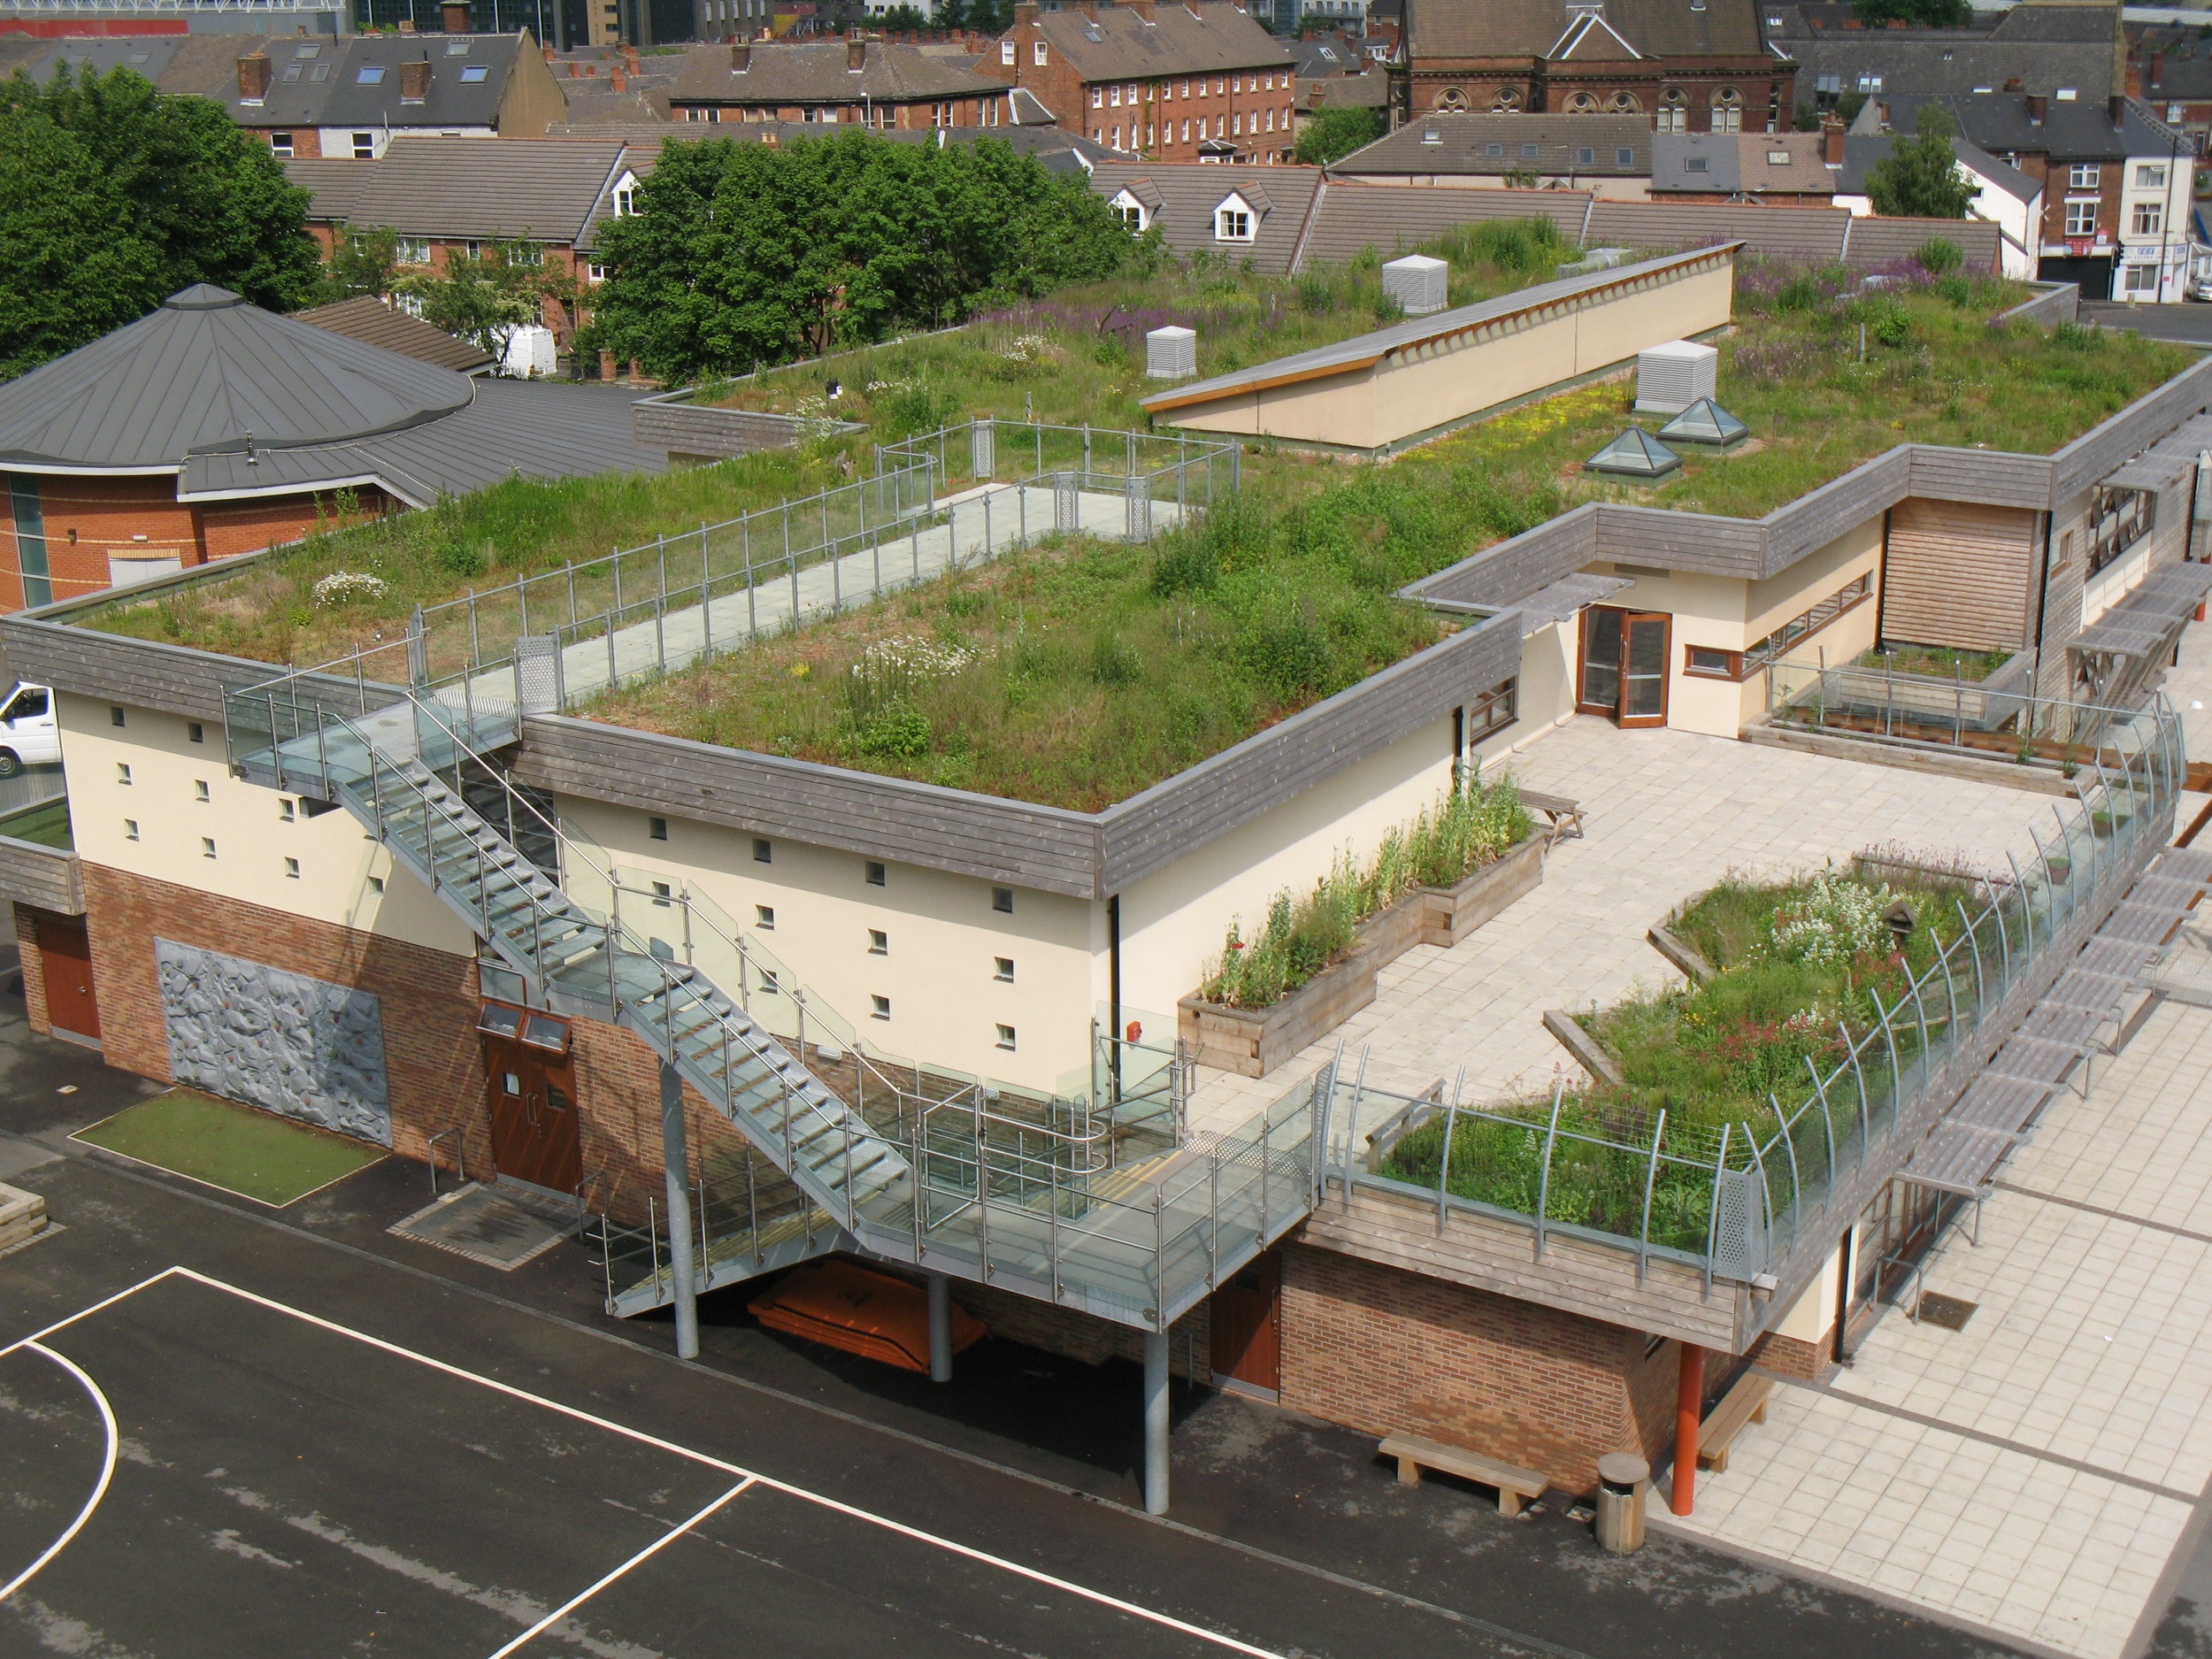 Green Roof on a School